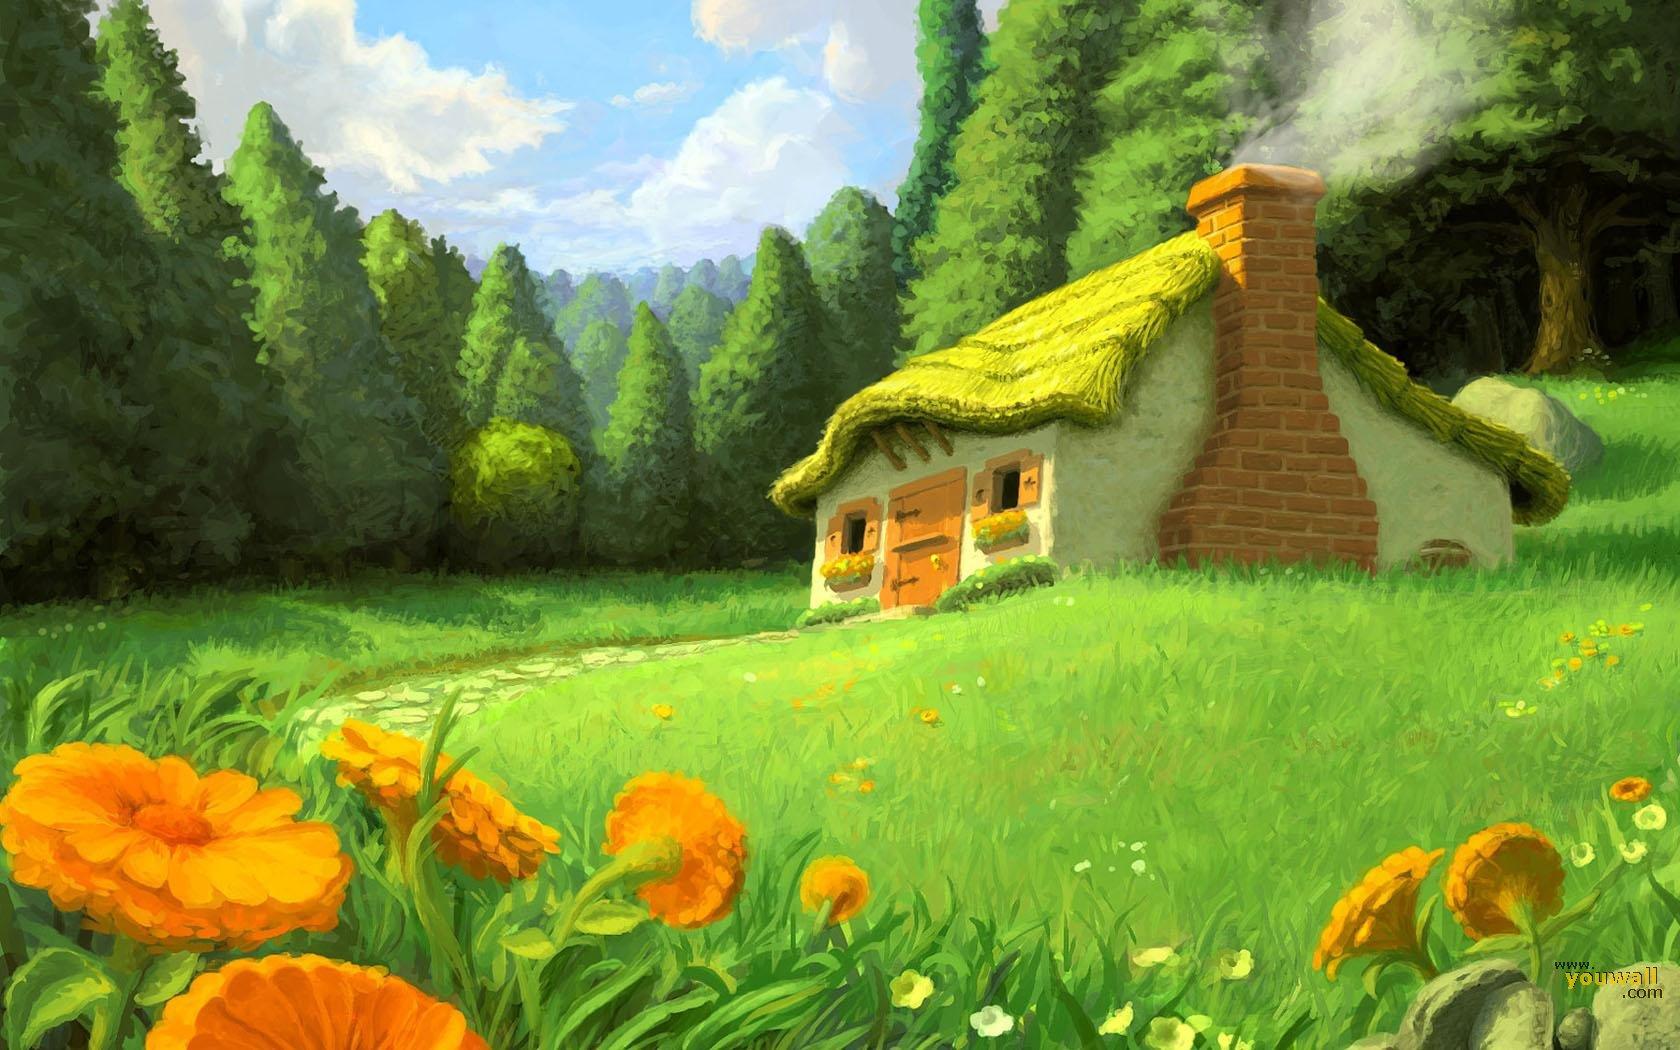 House In The Forest Painting - House In The Forest Painting